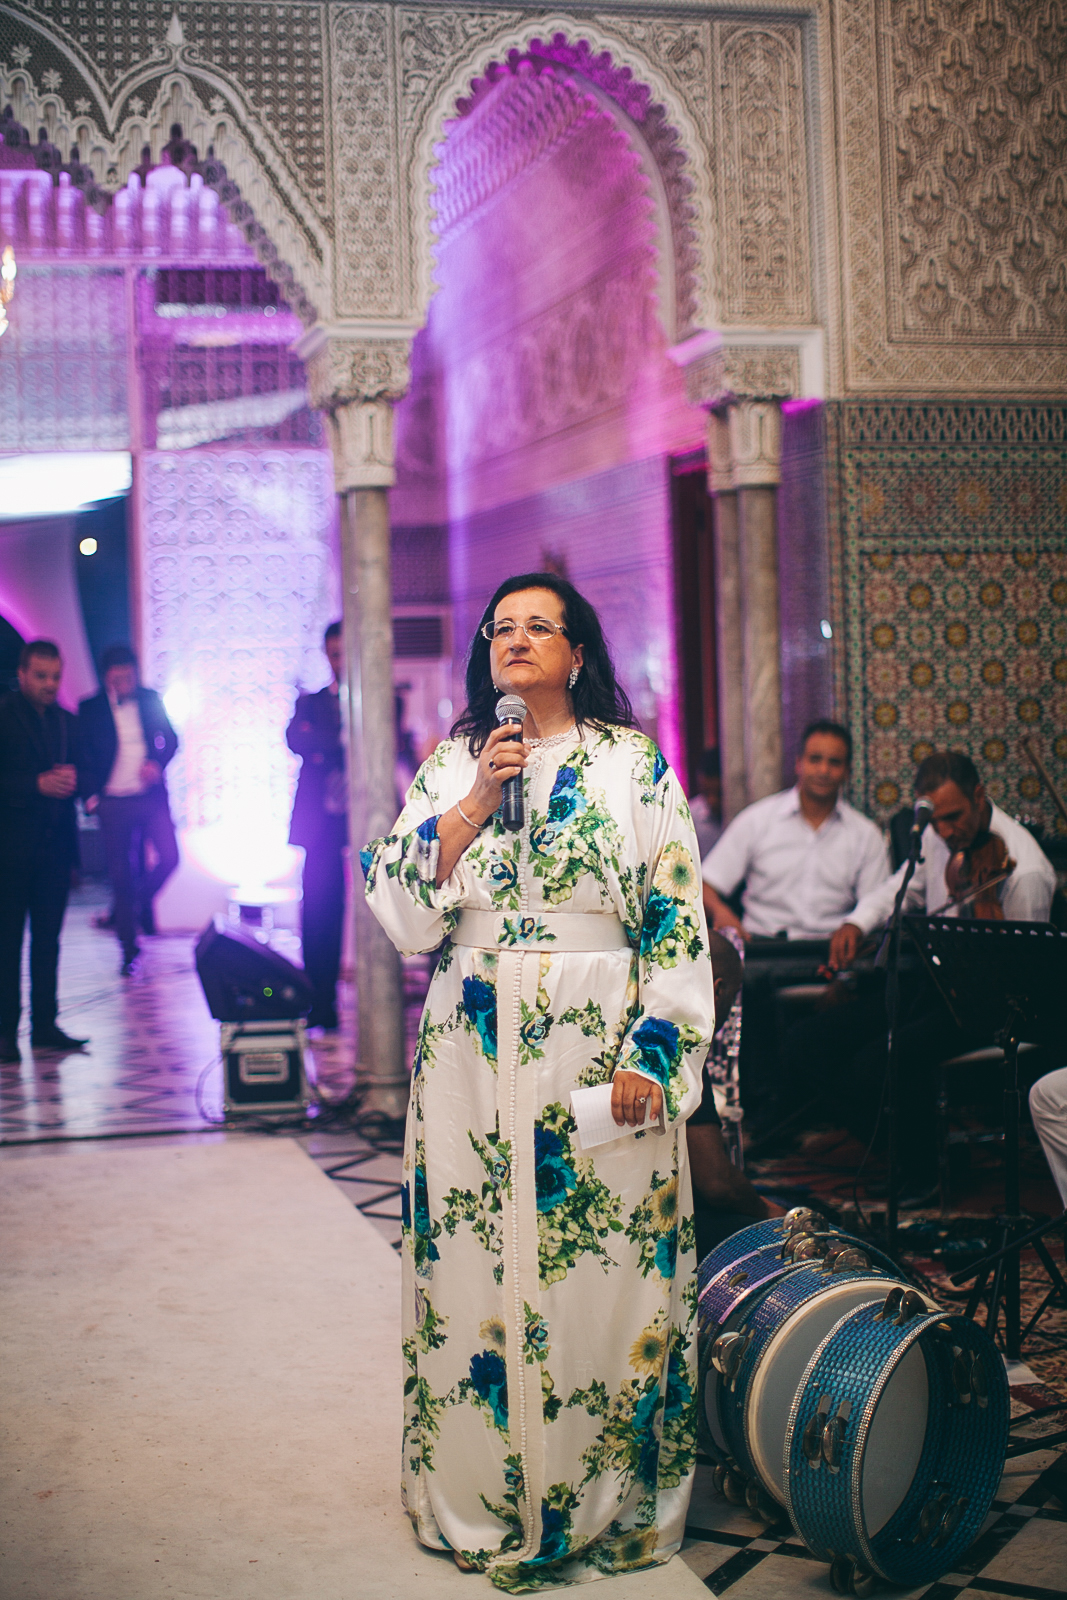 traditional_moroccan_wedding_photographry_casablanca_morocco_houda_vivek_ebony_siovhan_bokeh_photography_144.jpg